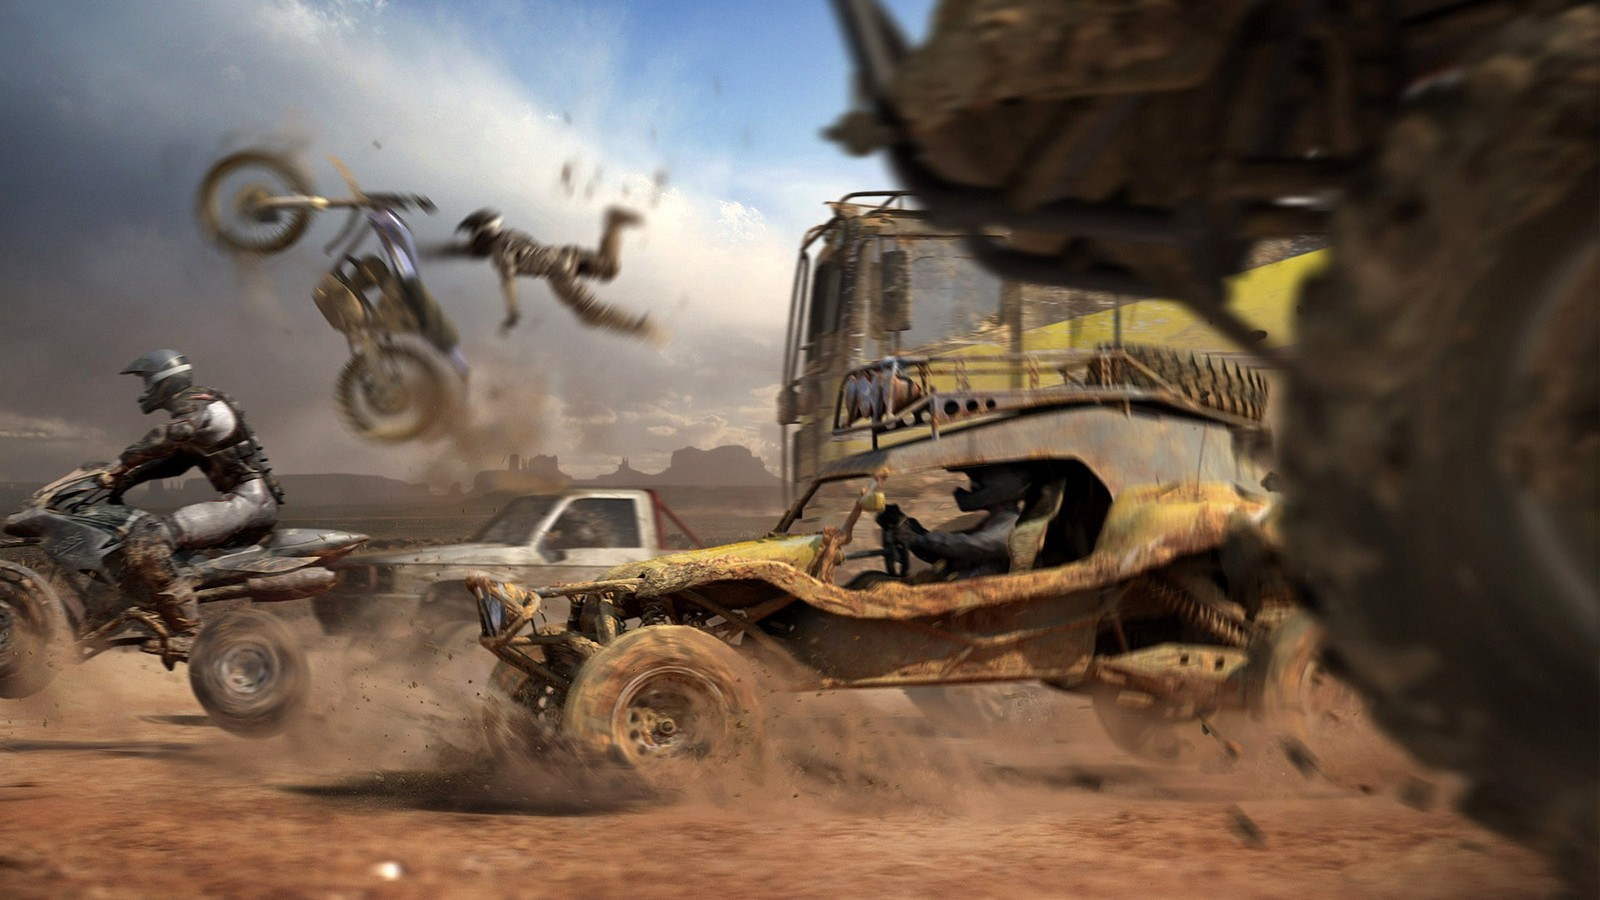 Dirt Games Cars And Bike Race HD Wallpaper Games HD Wallpaper 3D 1600x900